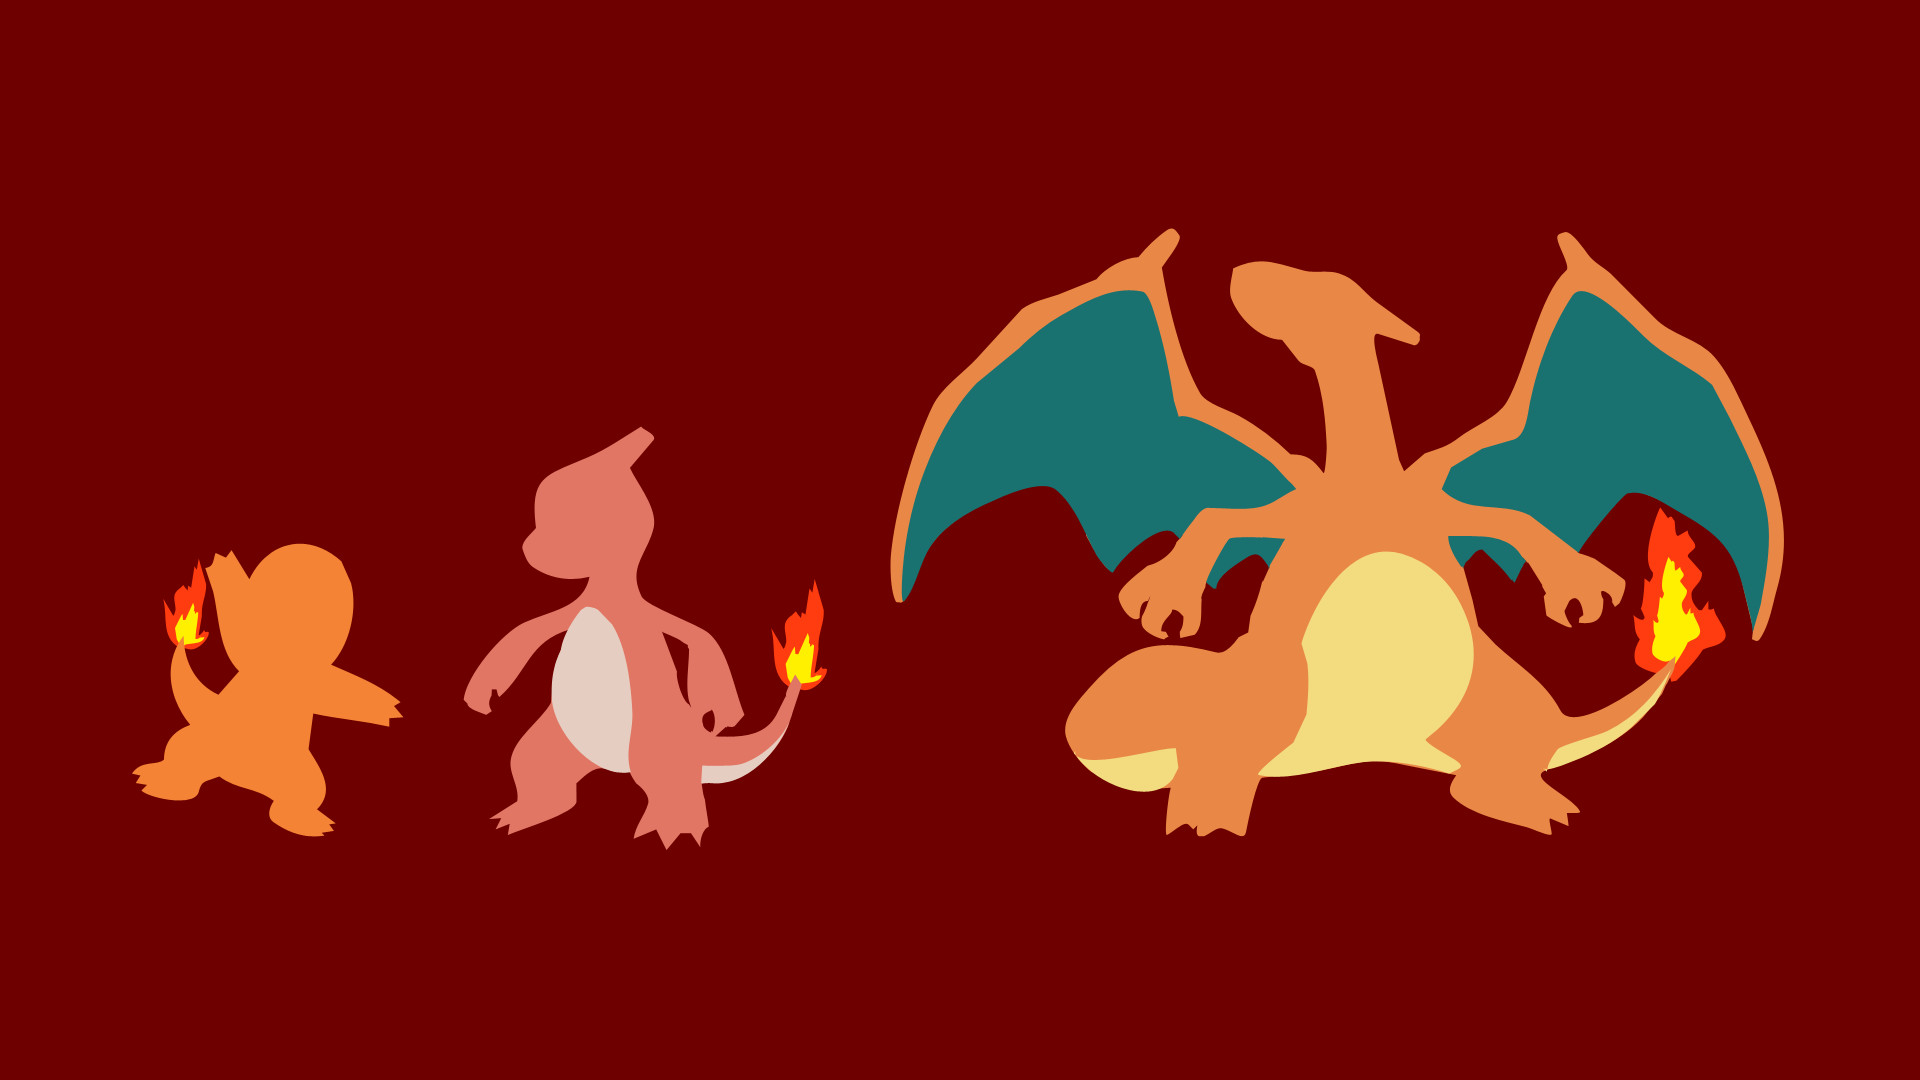 Charizard Background (68+ images)